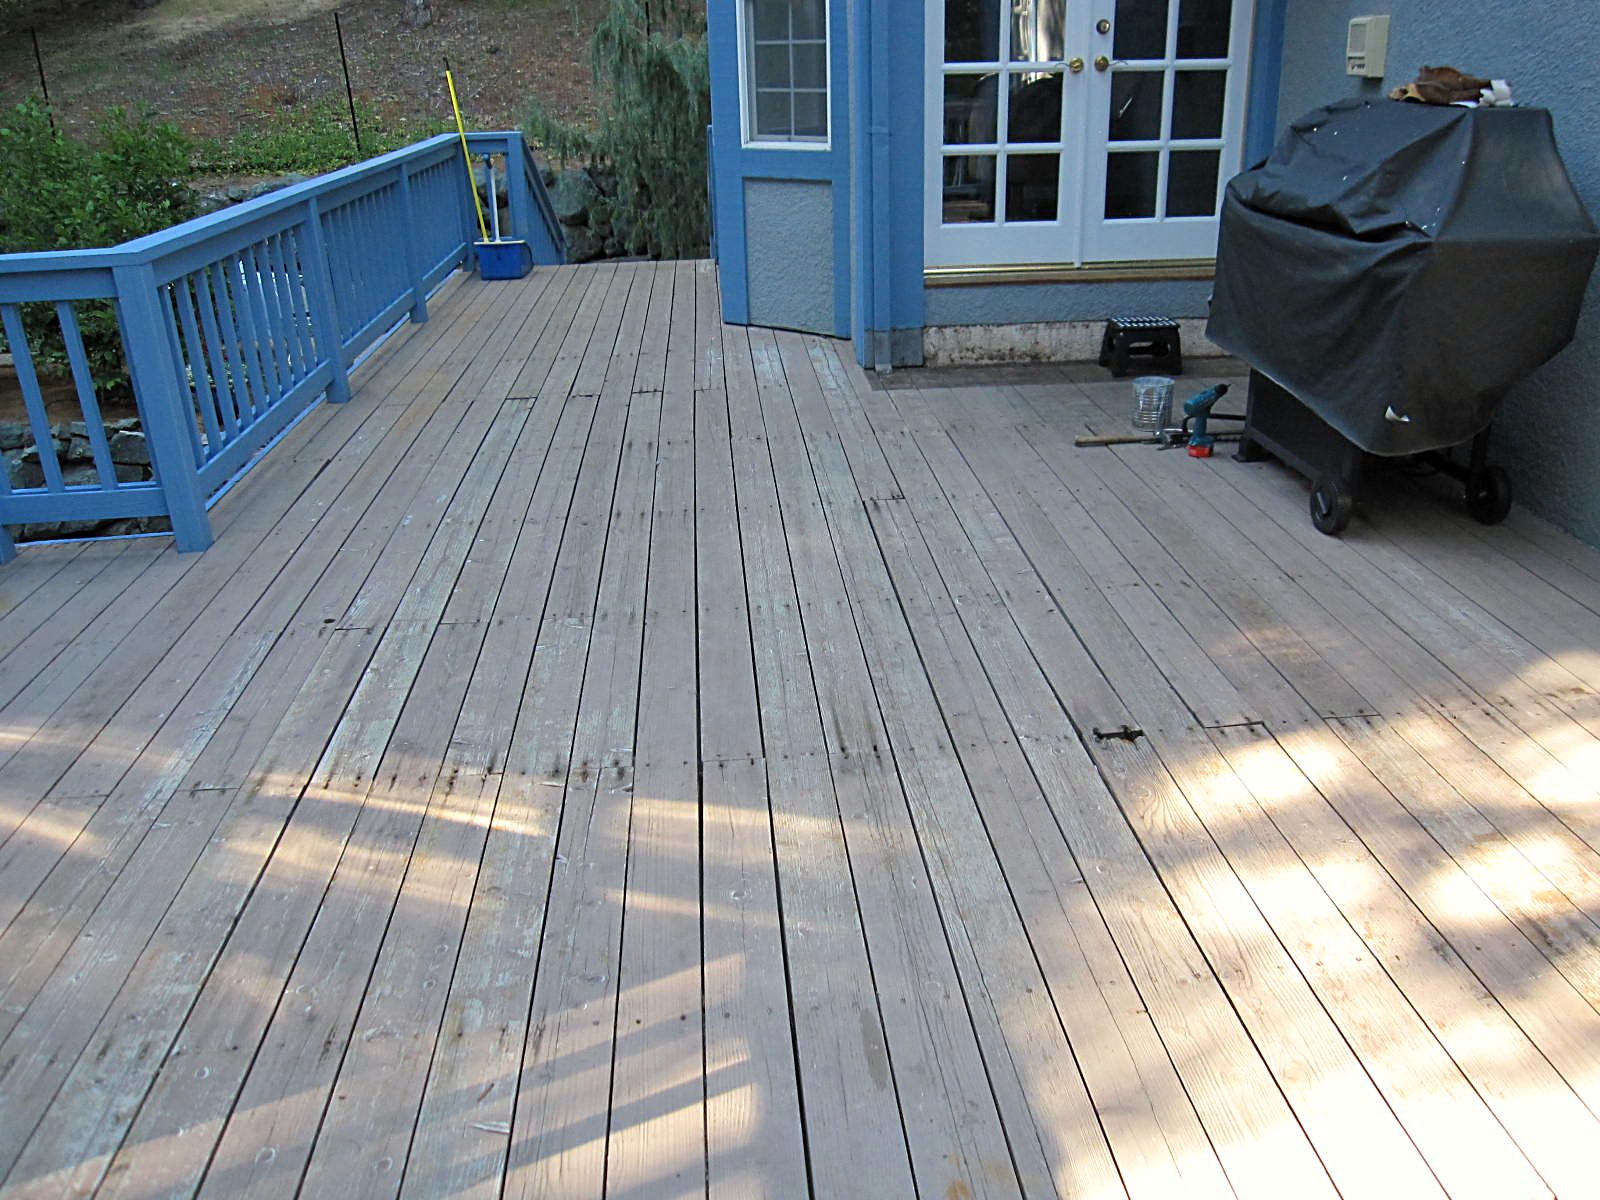 Before and after wooden decks vs composite deck amazing deck for Redwood vs composite decking